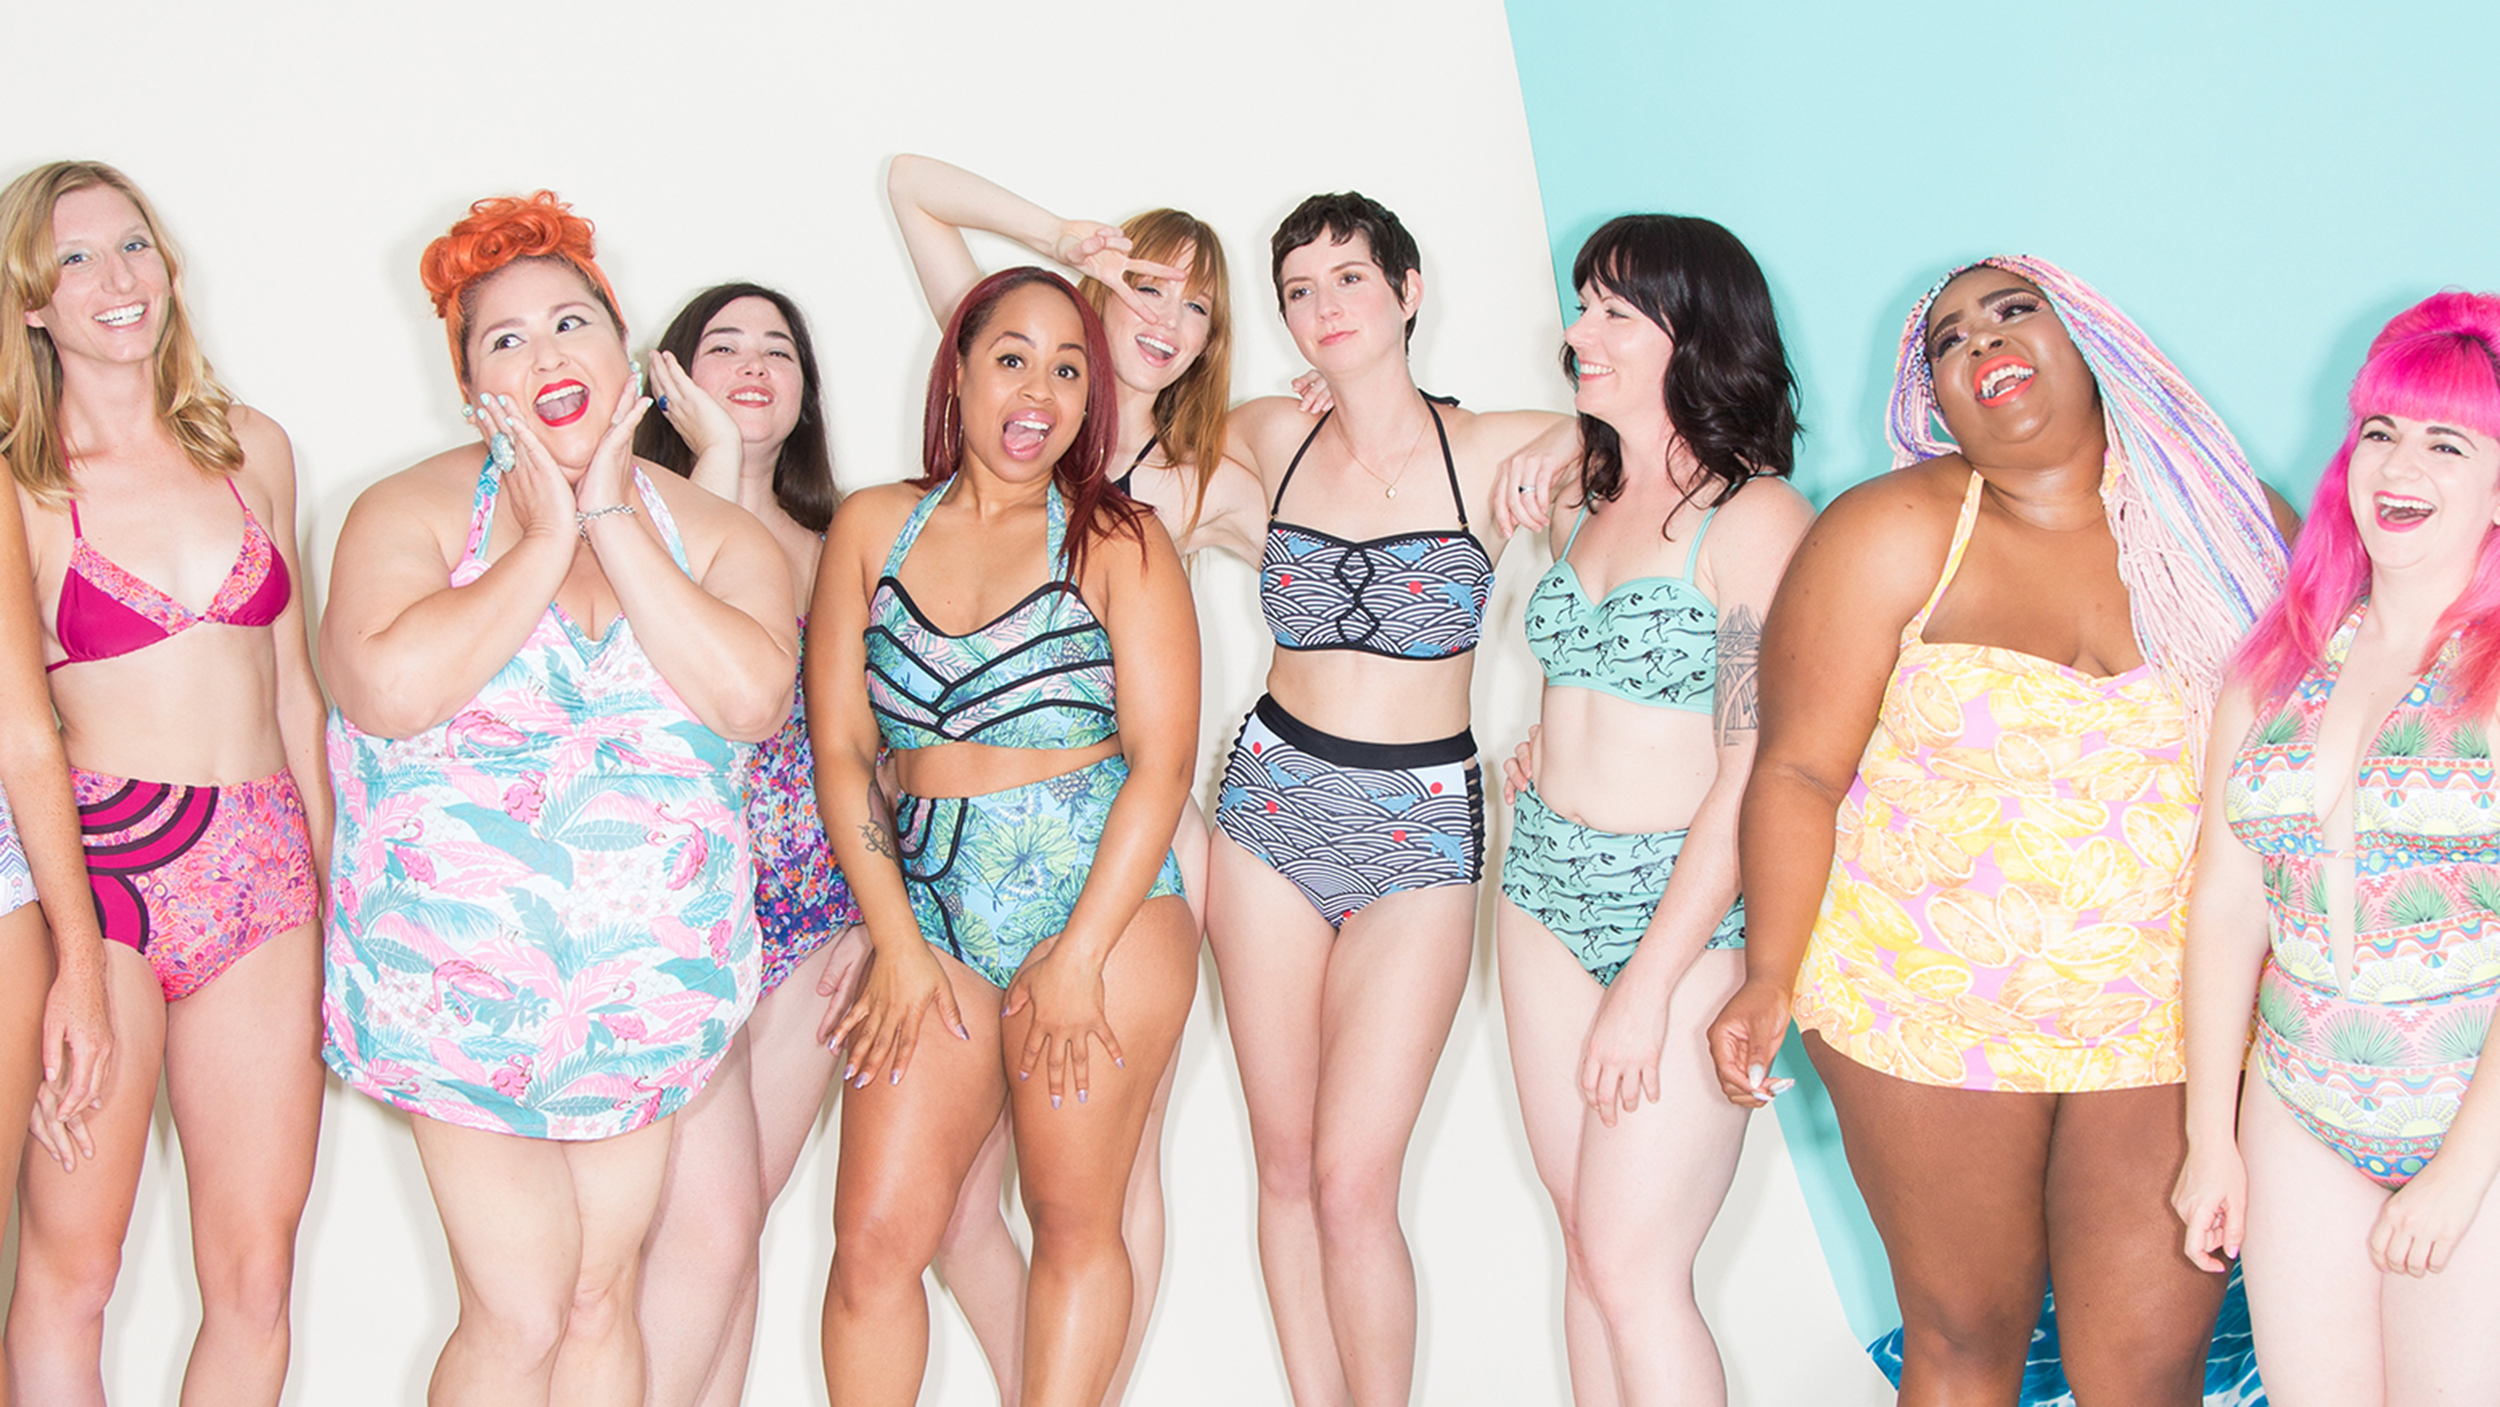 Modcloth Proves We All Have Swimsuit Bodies With New Body Positive Campaign